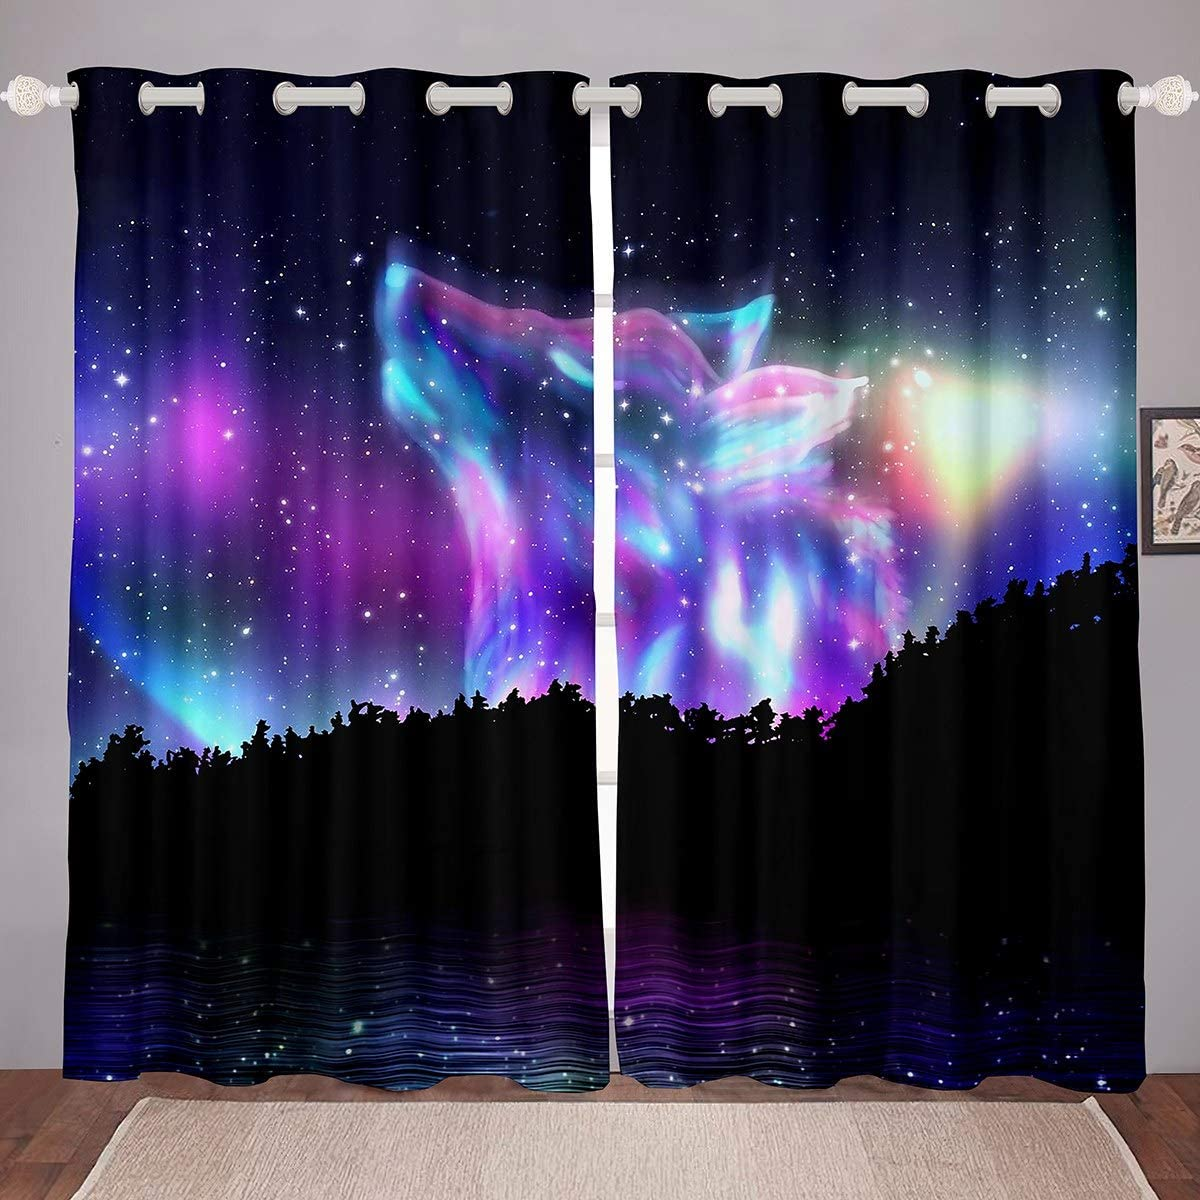 Safety and trust Northern Light Curtain Colorful Classic Galaxy Wolf Window Treatments Fo